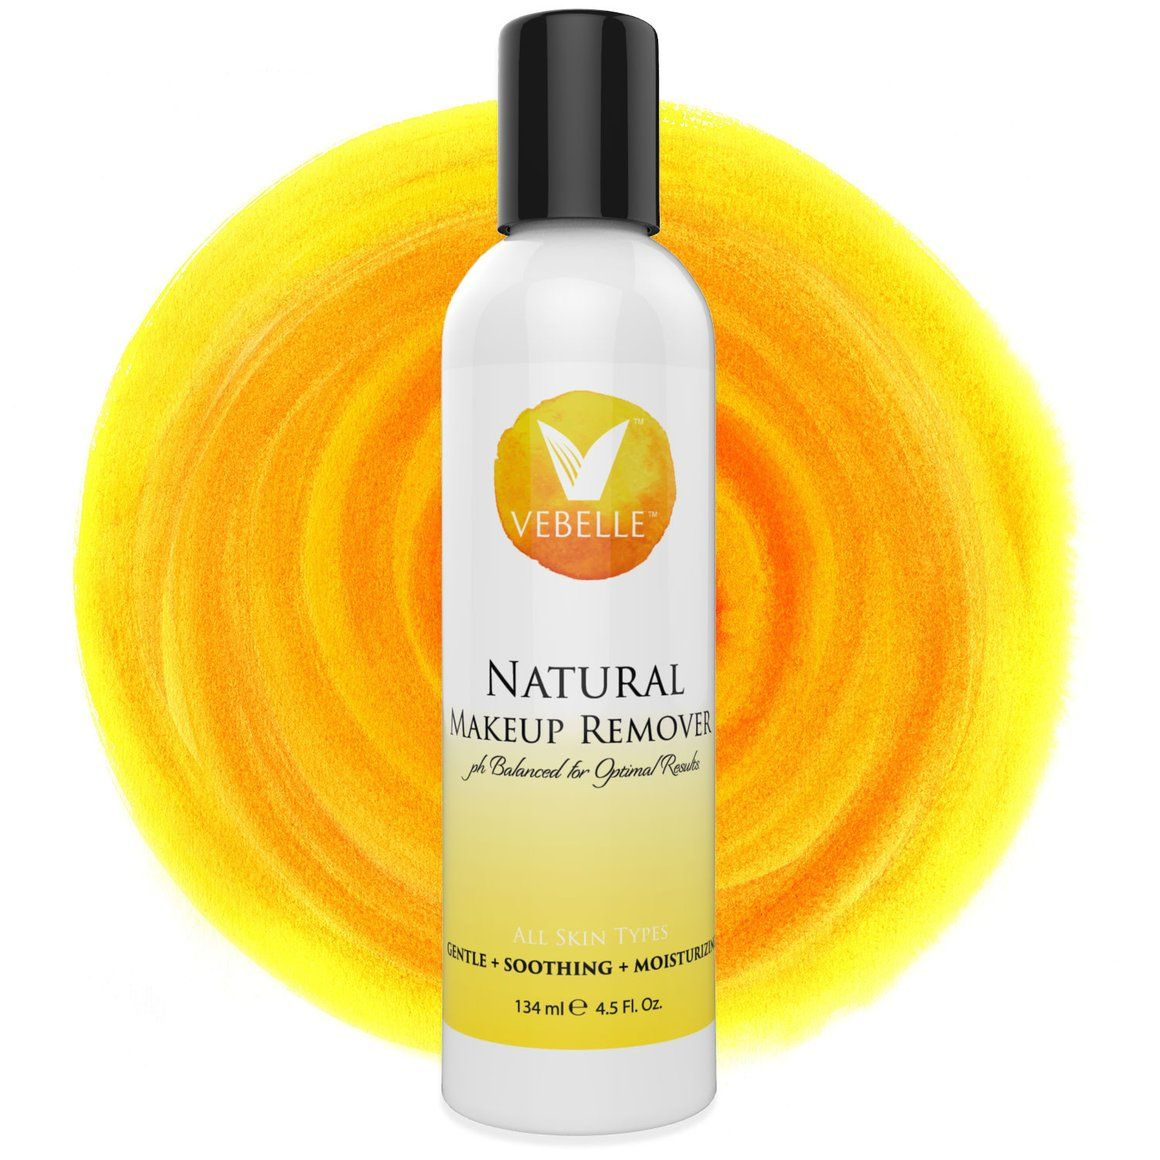 Natural Makeup Remover 3.4 fl oz Natural makeup